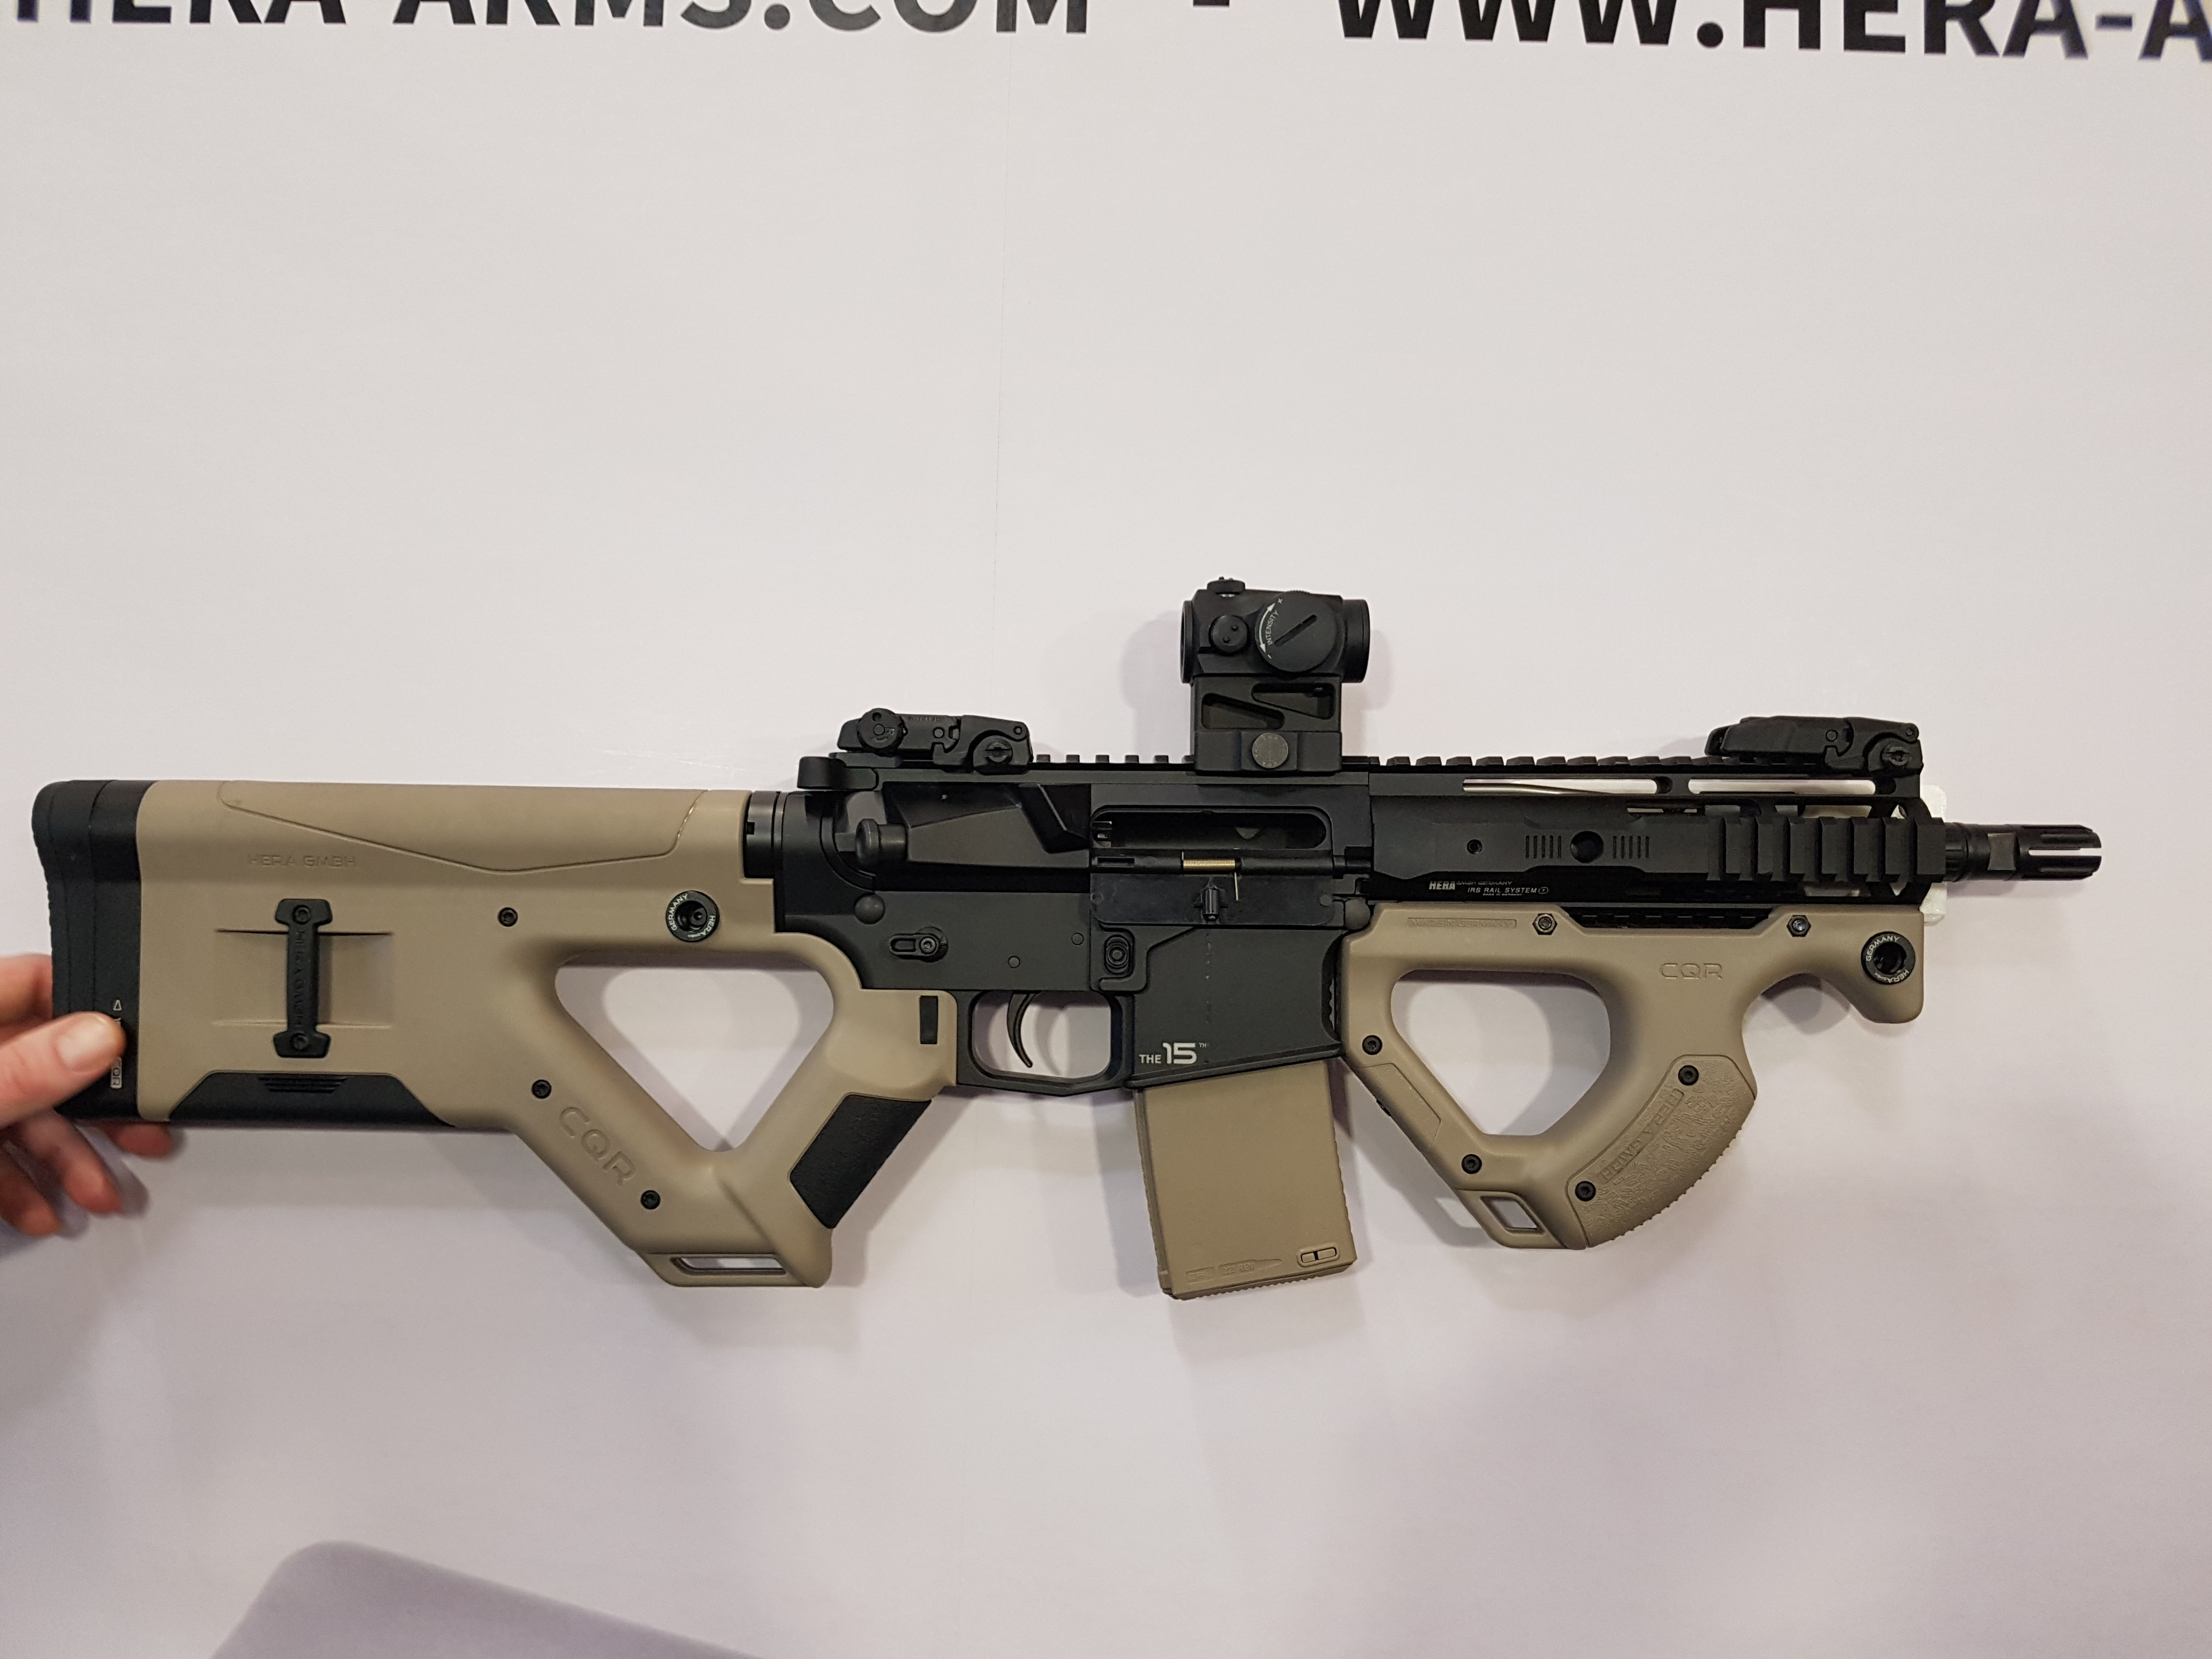 Hera arms cqr page 1 ar15 com - Hera Arms Showed Off The New Cqr Stock And Front Grip At Shotshow 2017 It S Been Leaking On The Interwebs But It S Official Release Definitely Made People